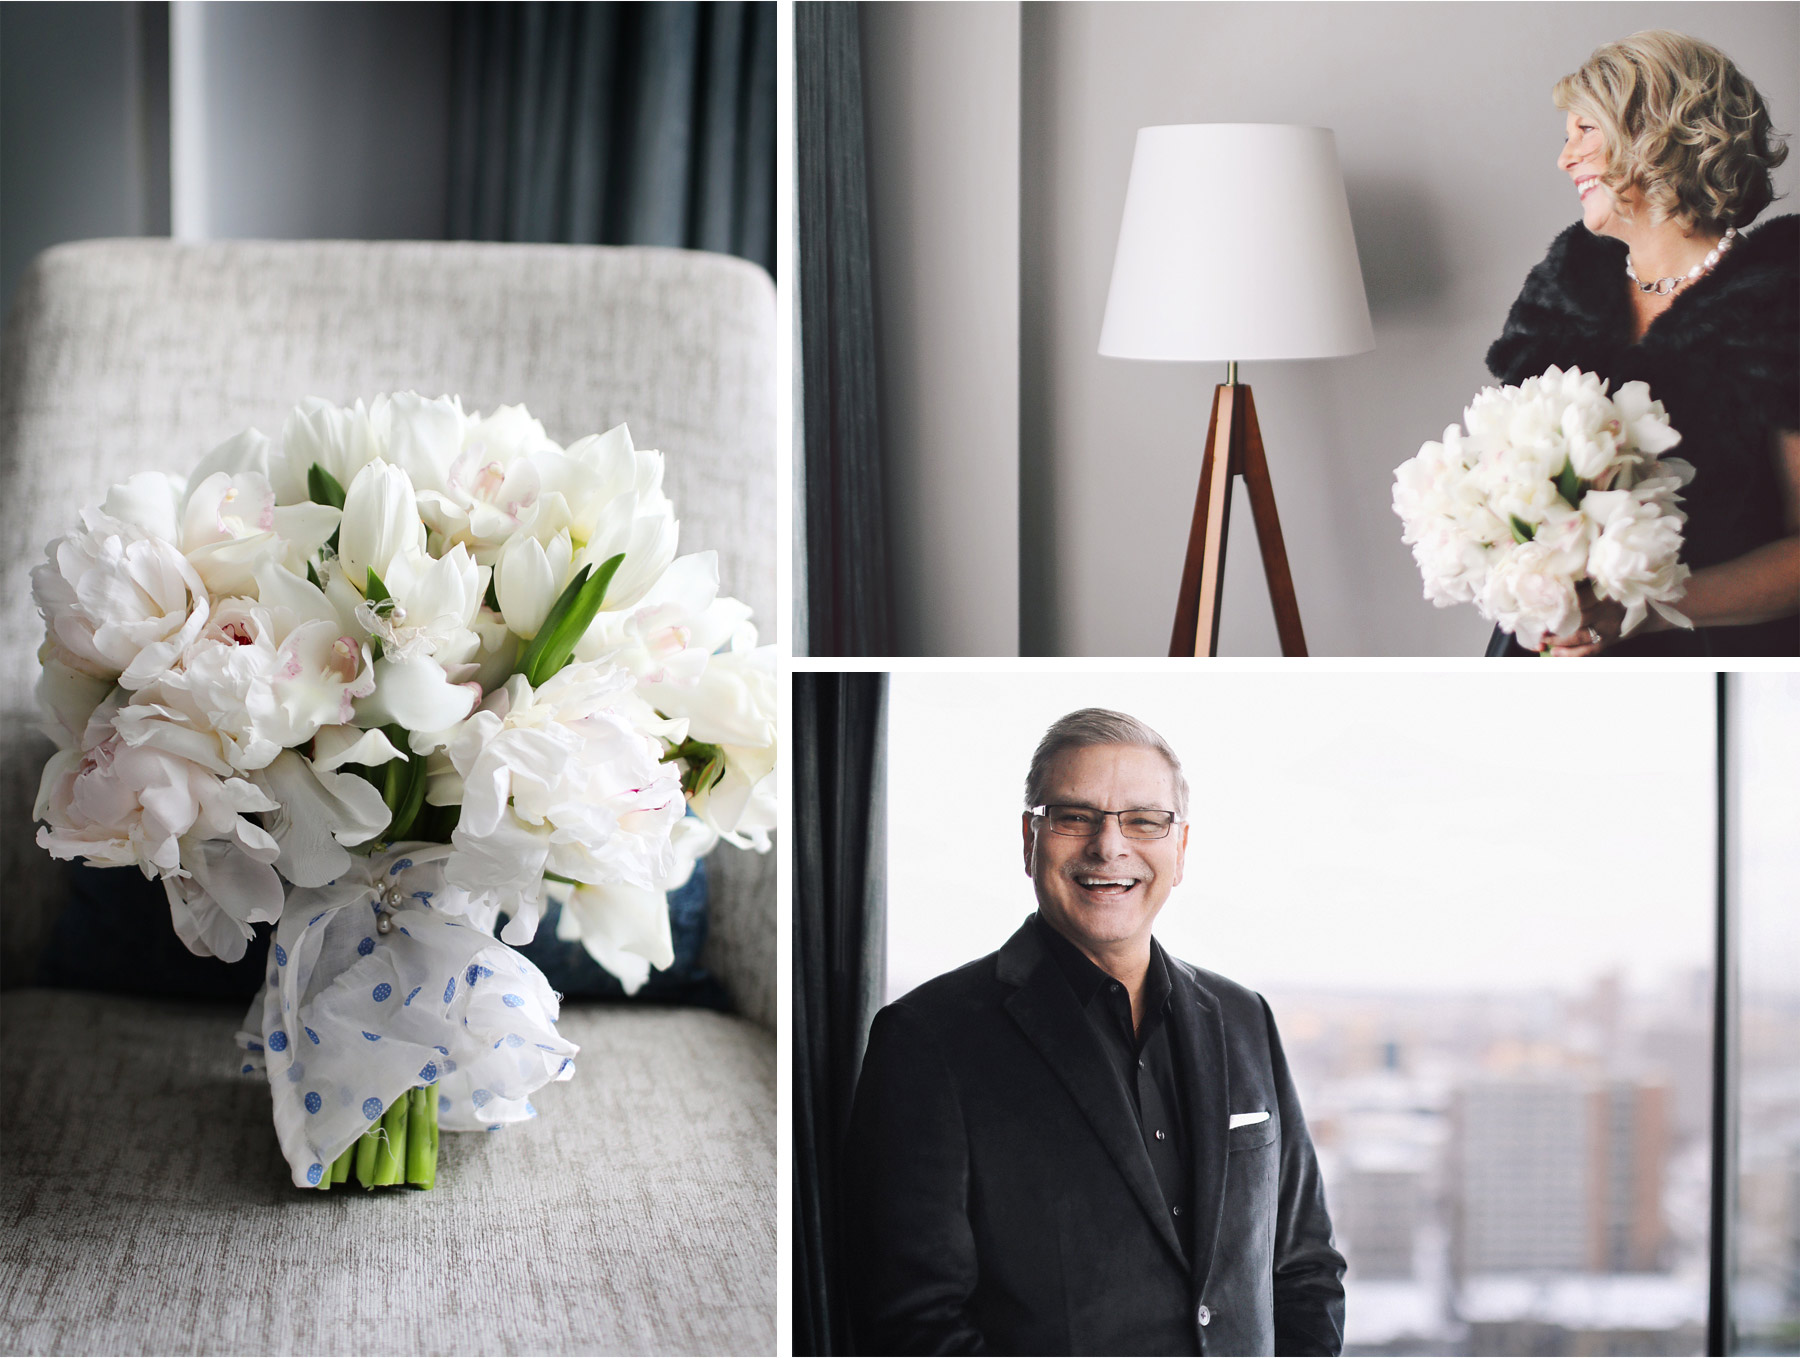 02-Minneapolis-Minnesota-Wedding-Photography-by-Vick-Photography-Downtown-Loews-Hotel-Bride-Groom-Flowers-Joan-and-Tim.jpg